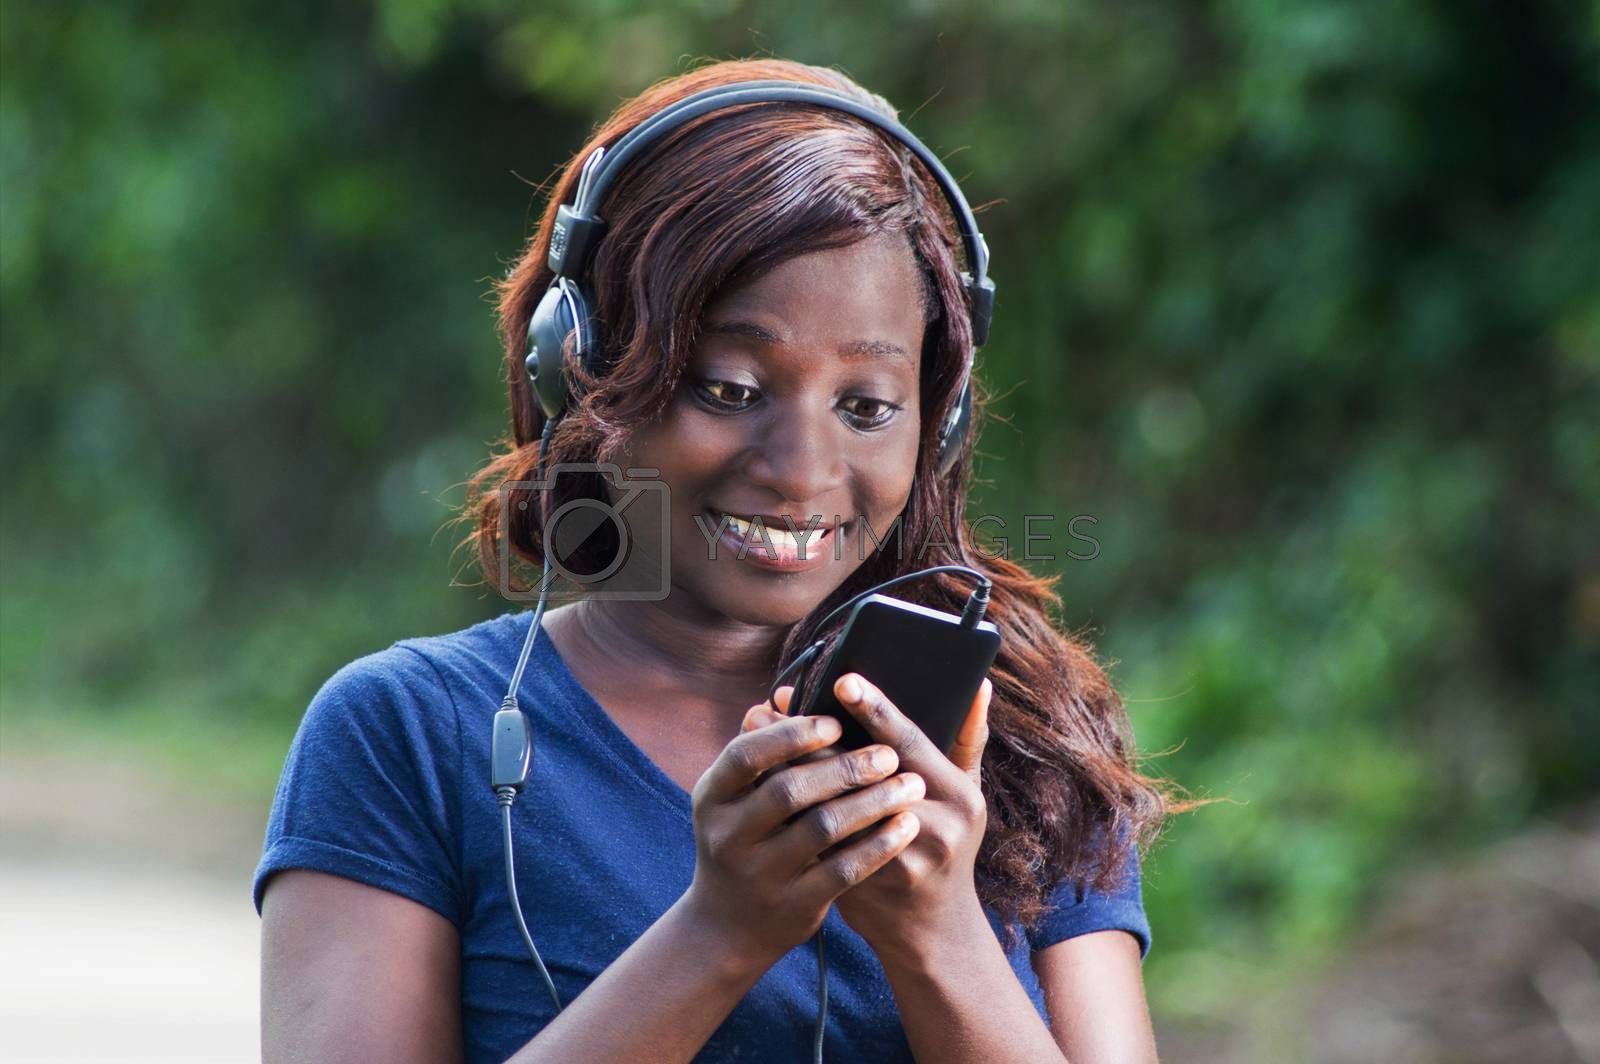 happy young woman with headphones. by vystekimages